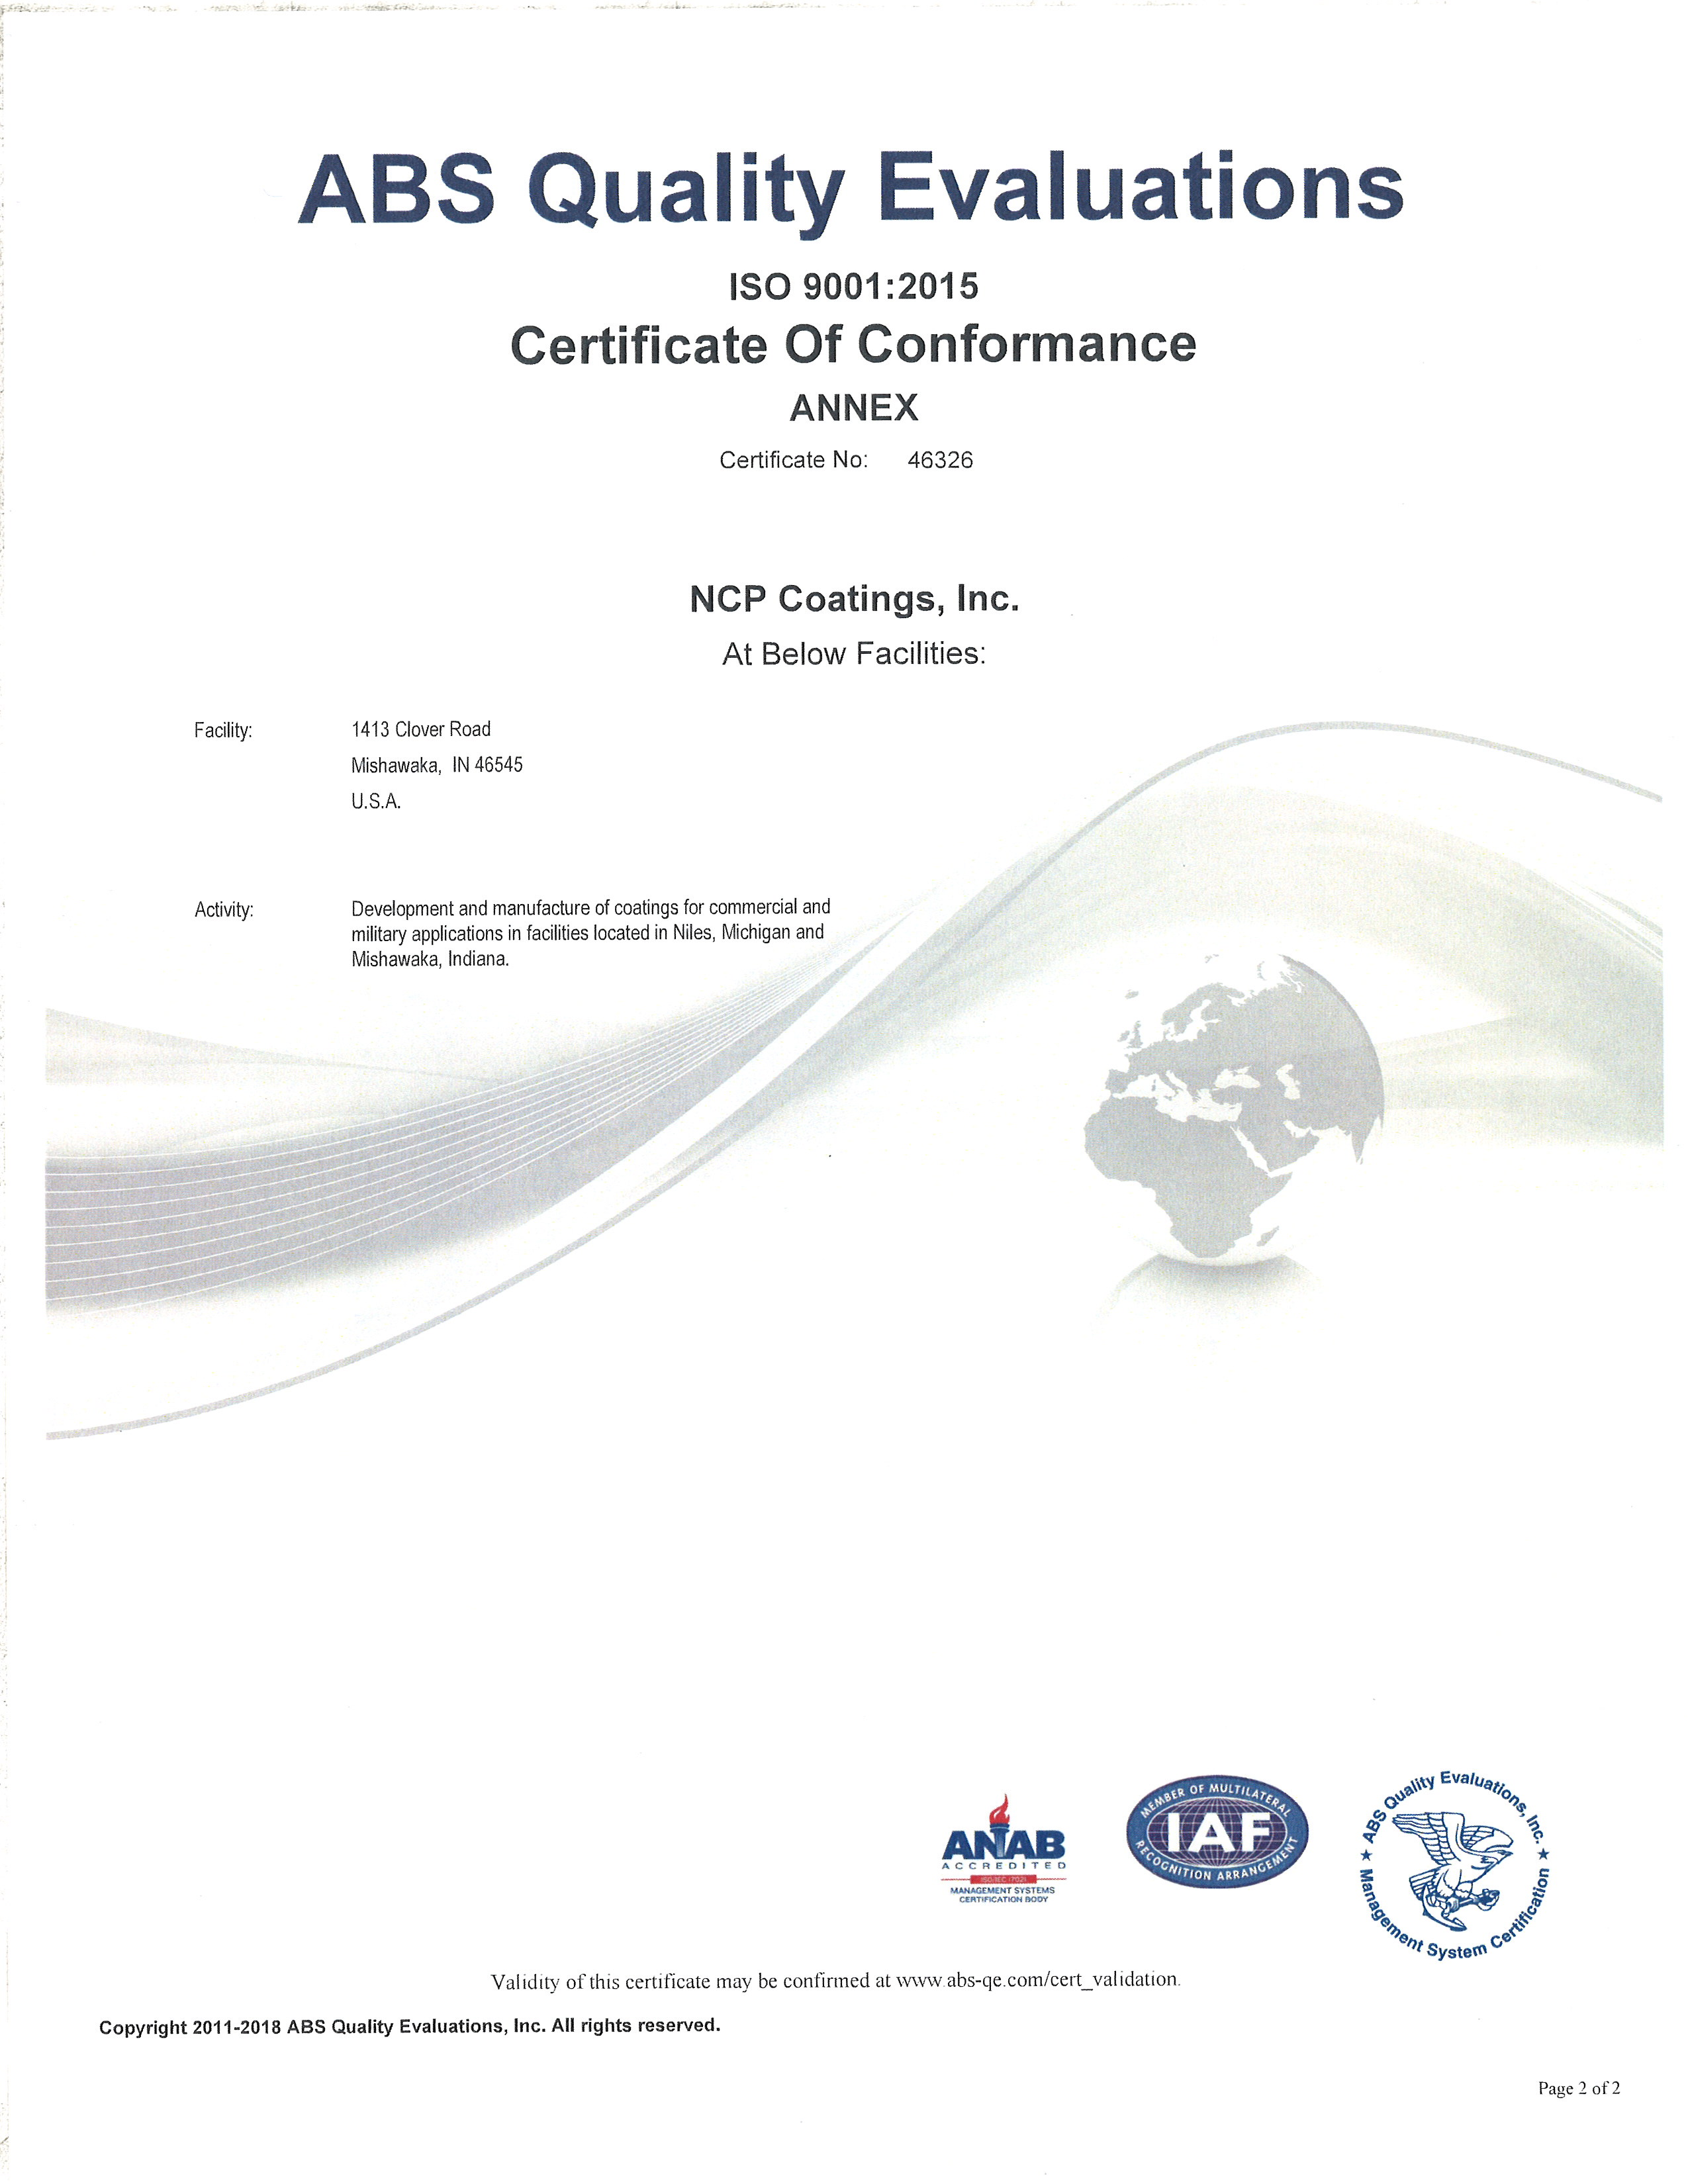 NCP Coatings ISO 9001:2015 Certificate of Conformance Annex